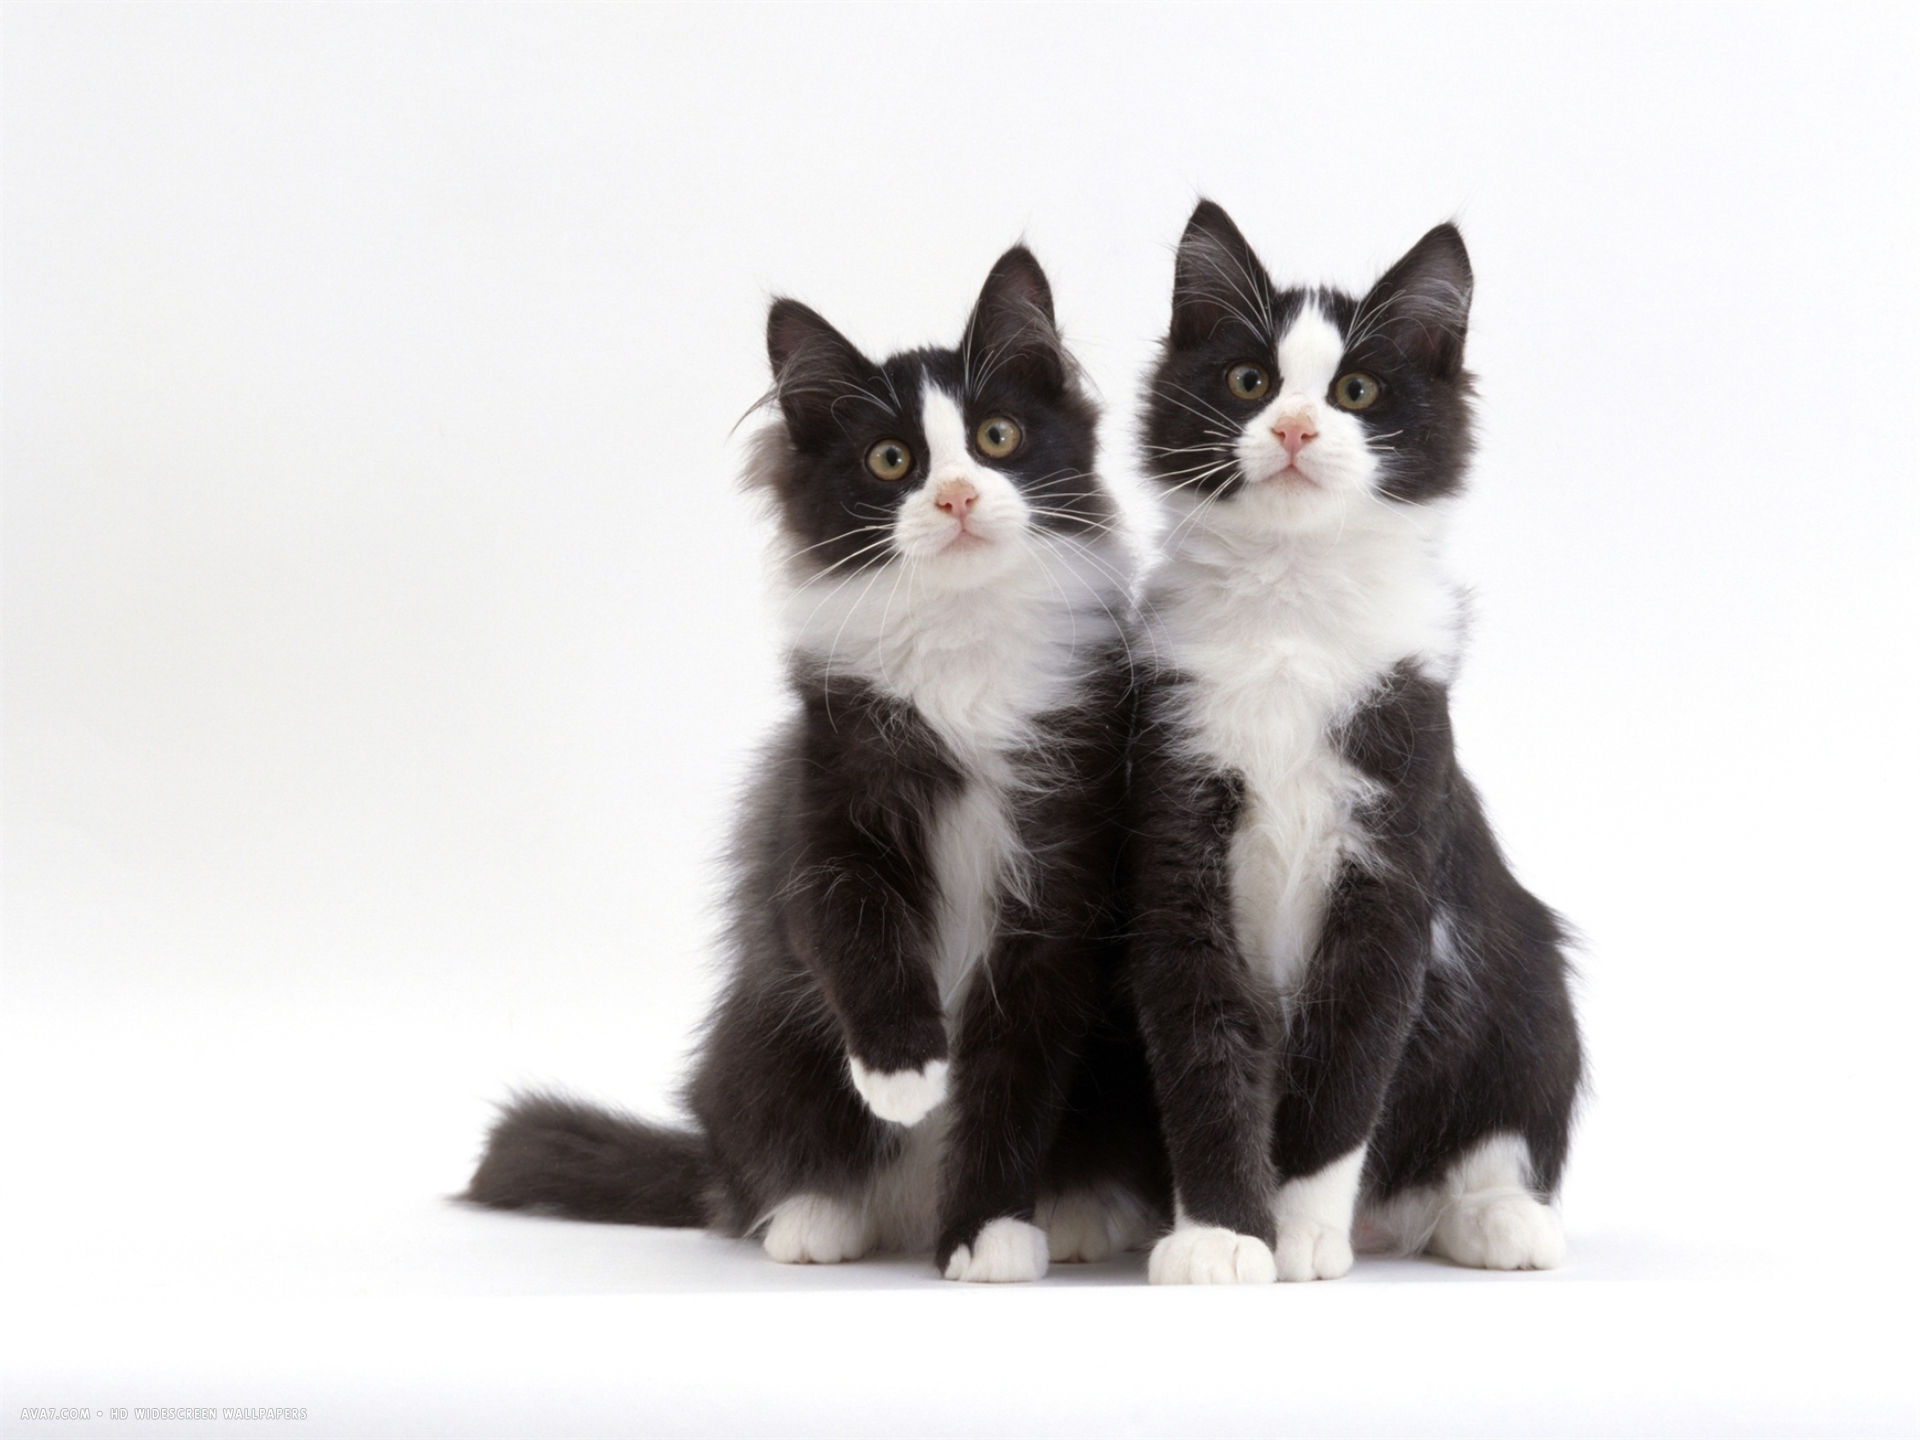 12 week identical brothers black and white kittens